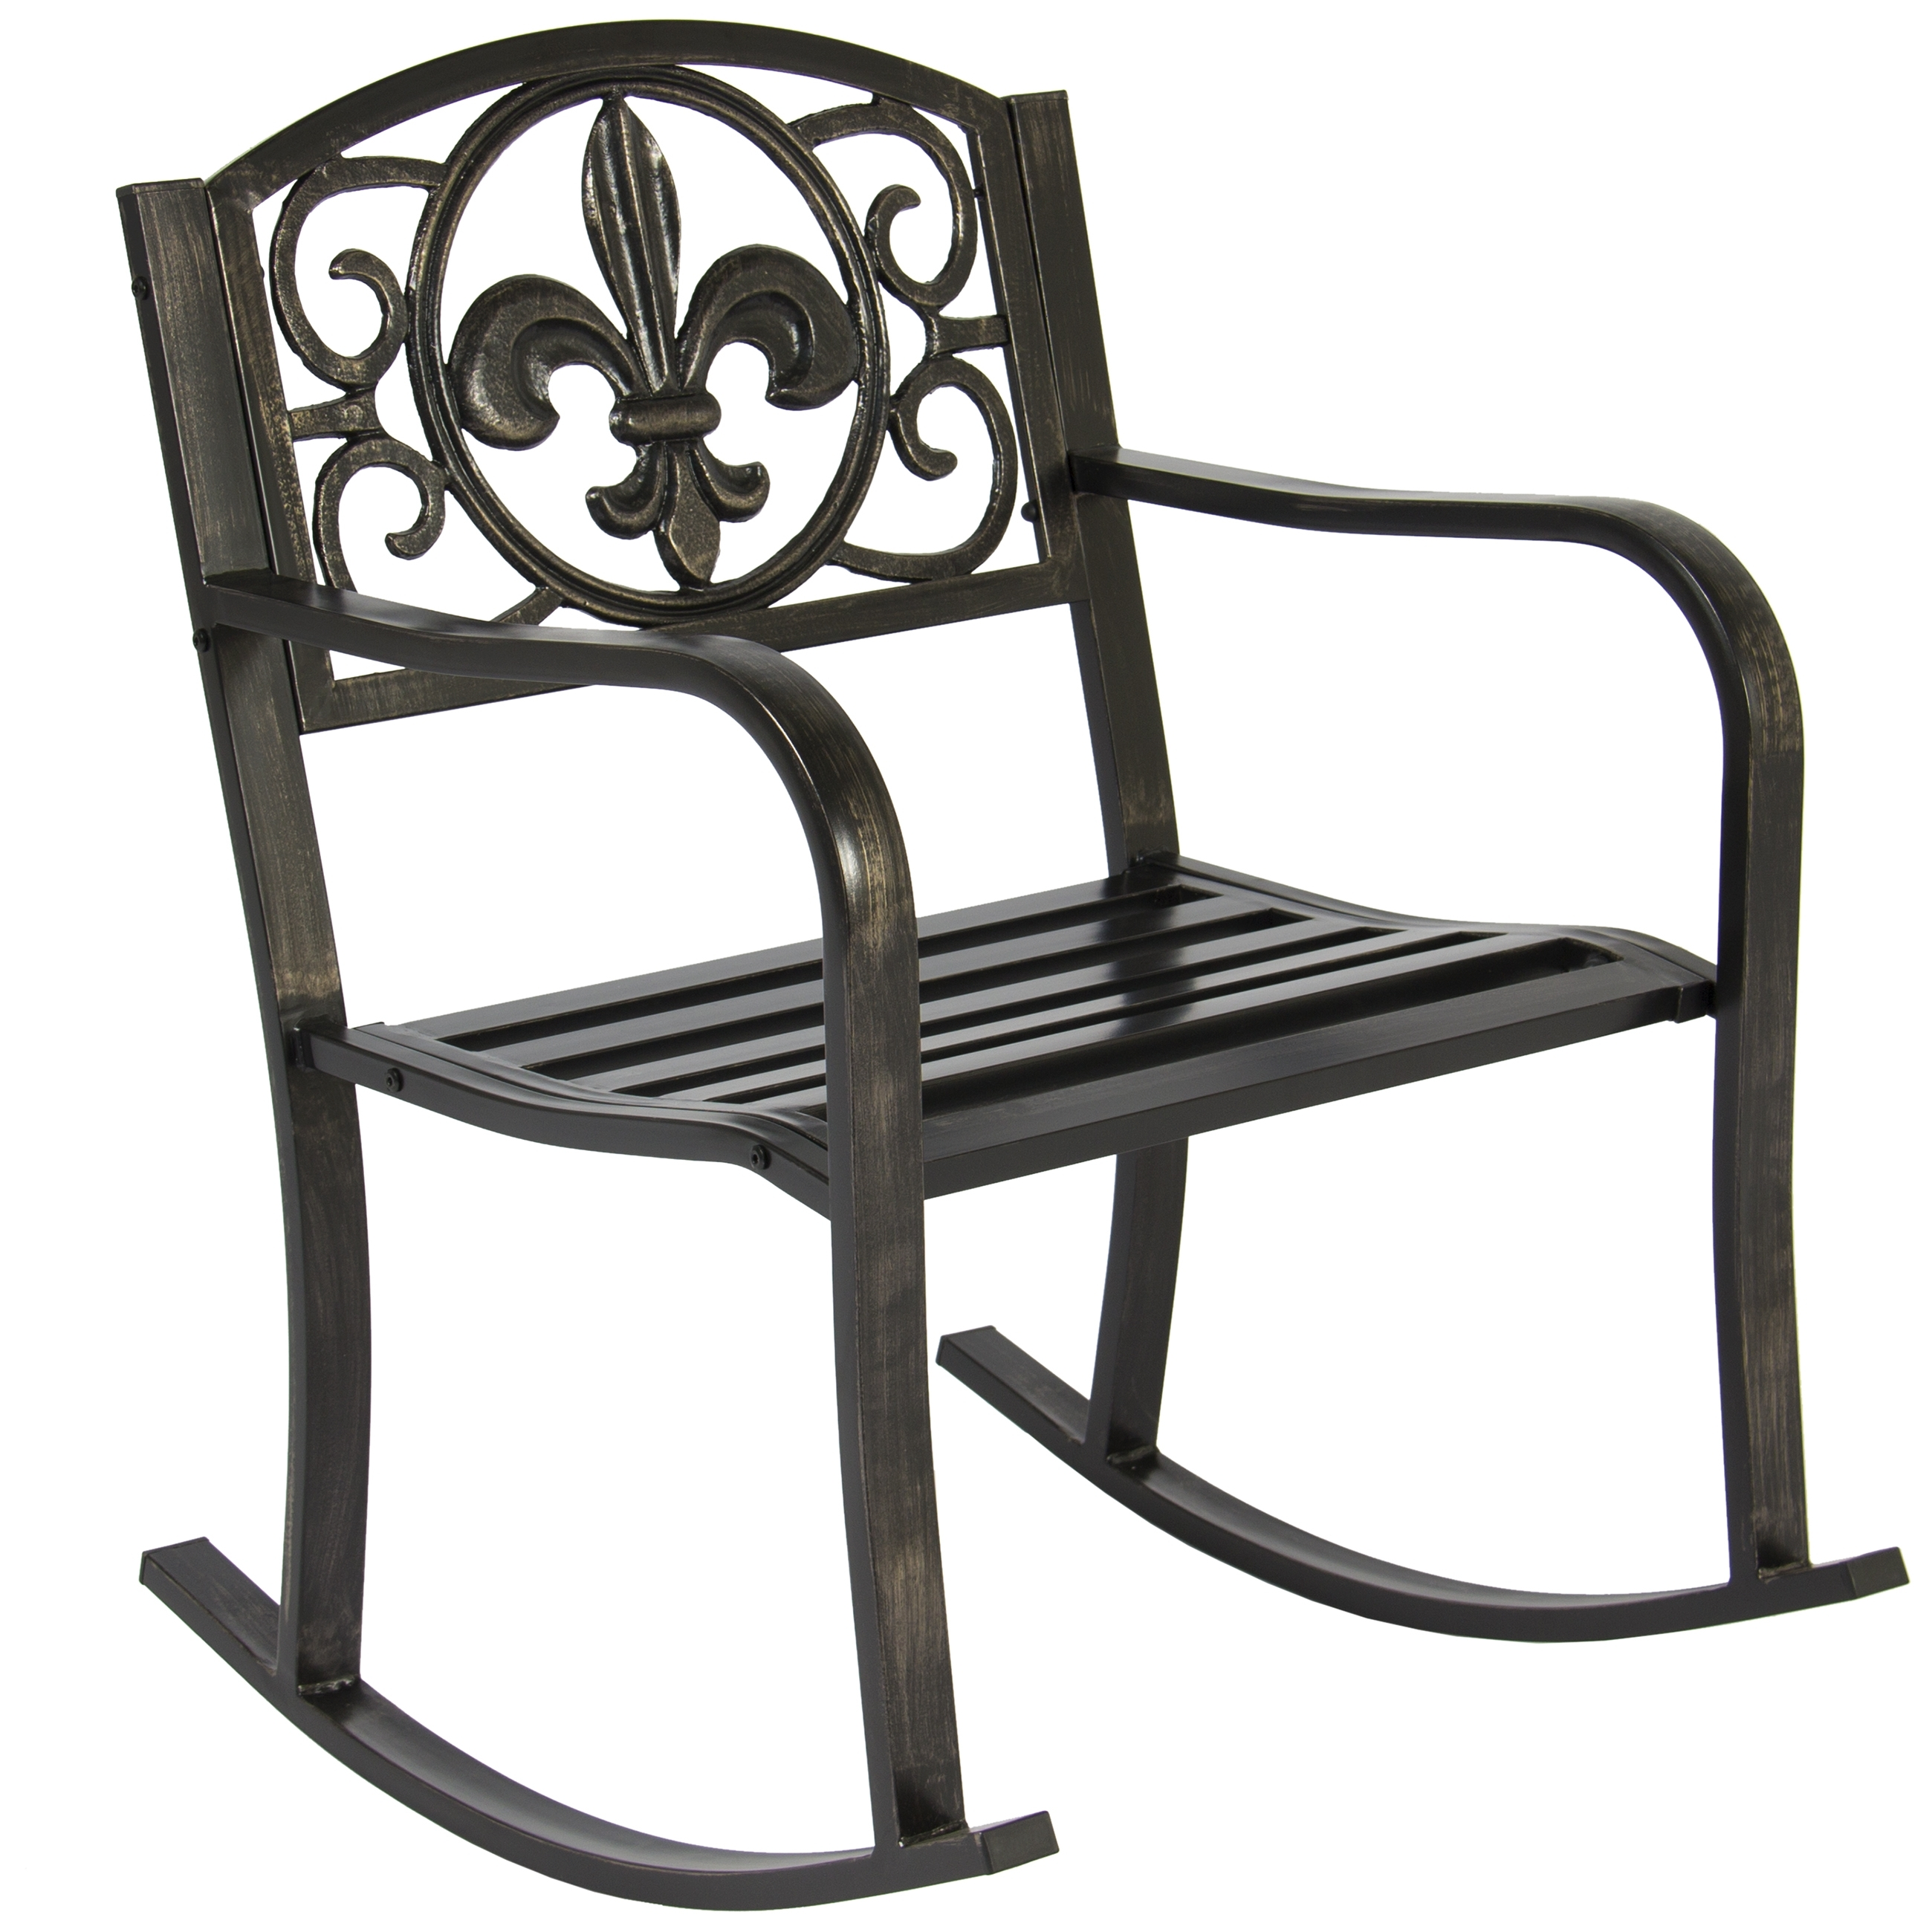 Inspiration about Best Choice Products Metal Rocking Chair Seat For Patio, Porch, Deck For Wrought Iron Patio Rocking Chairs (#11 of 15)